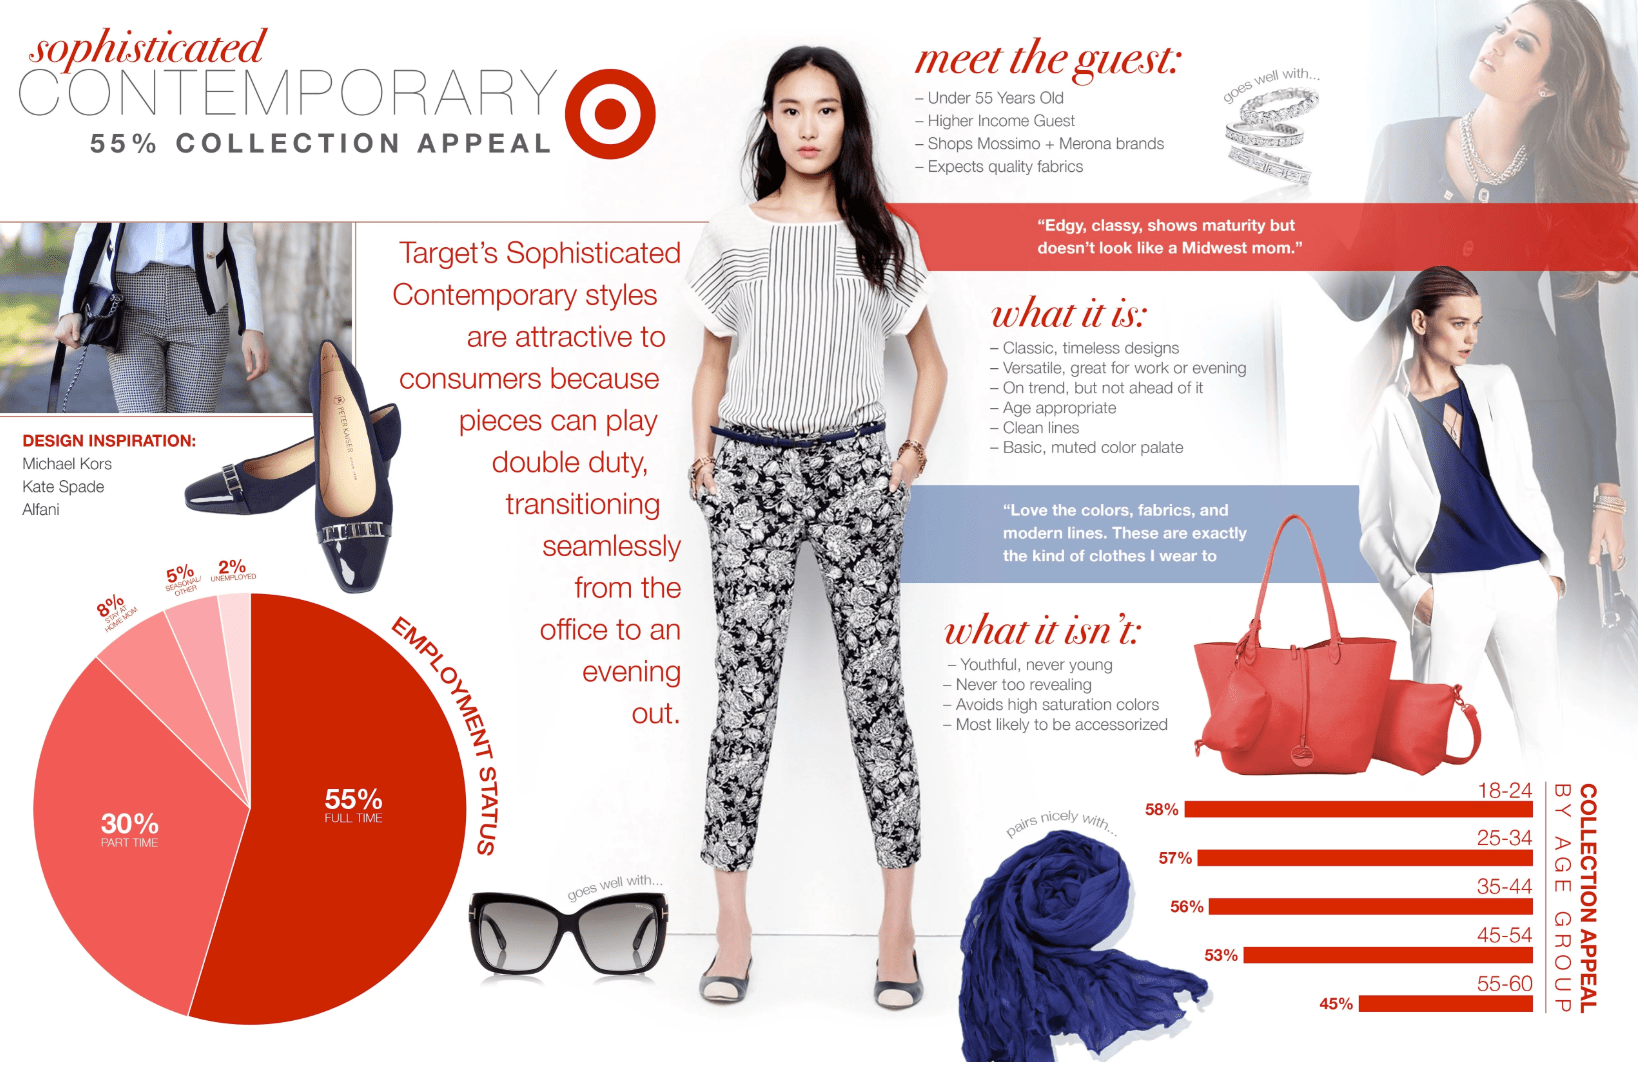 Brand Strategy Consumer Insights for Target fashion